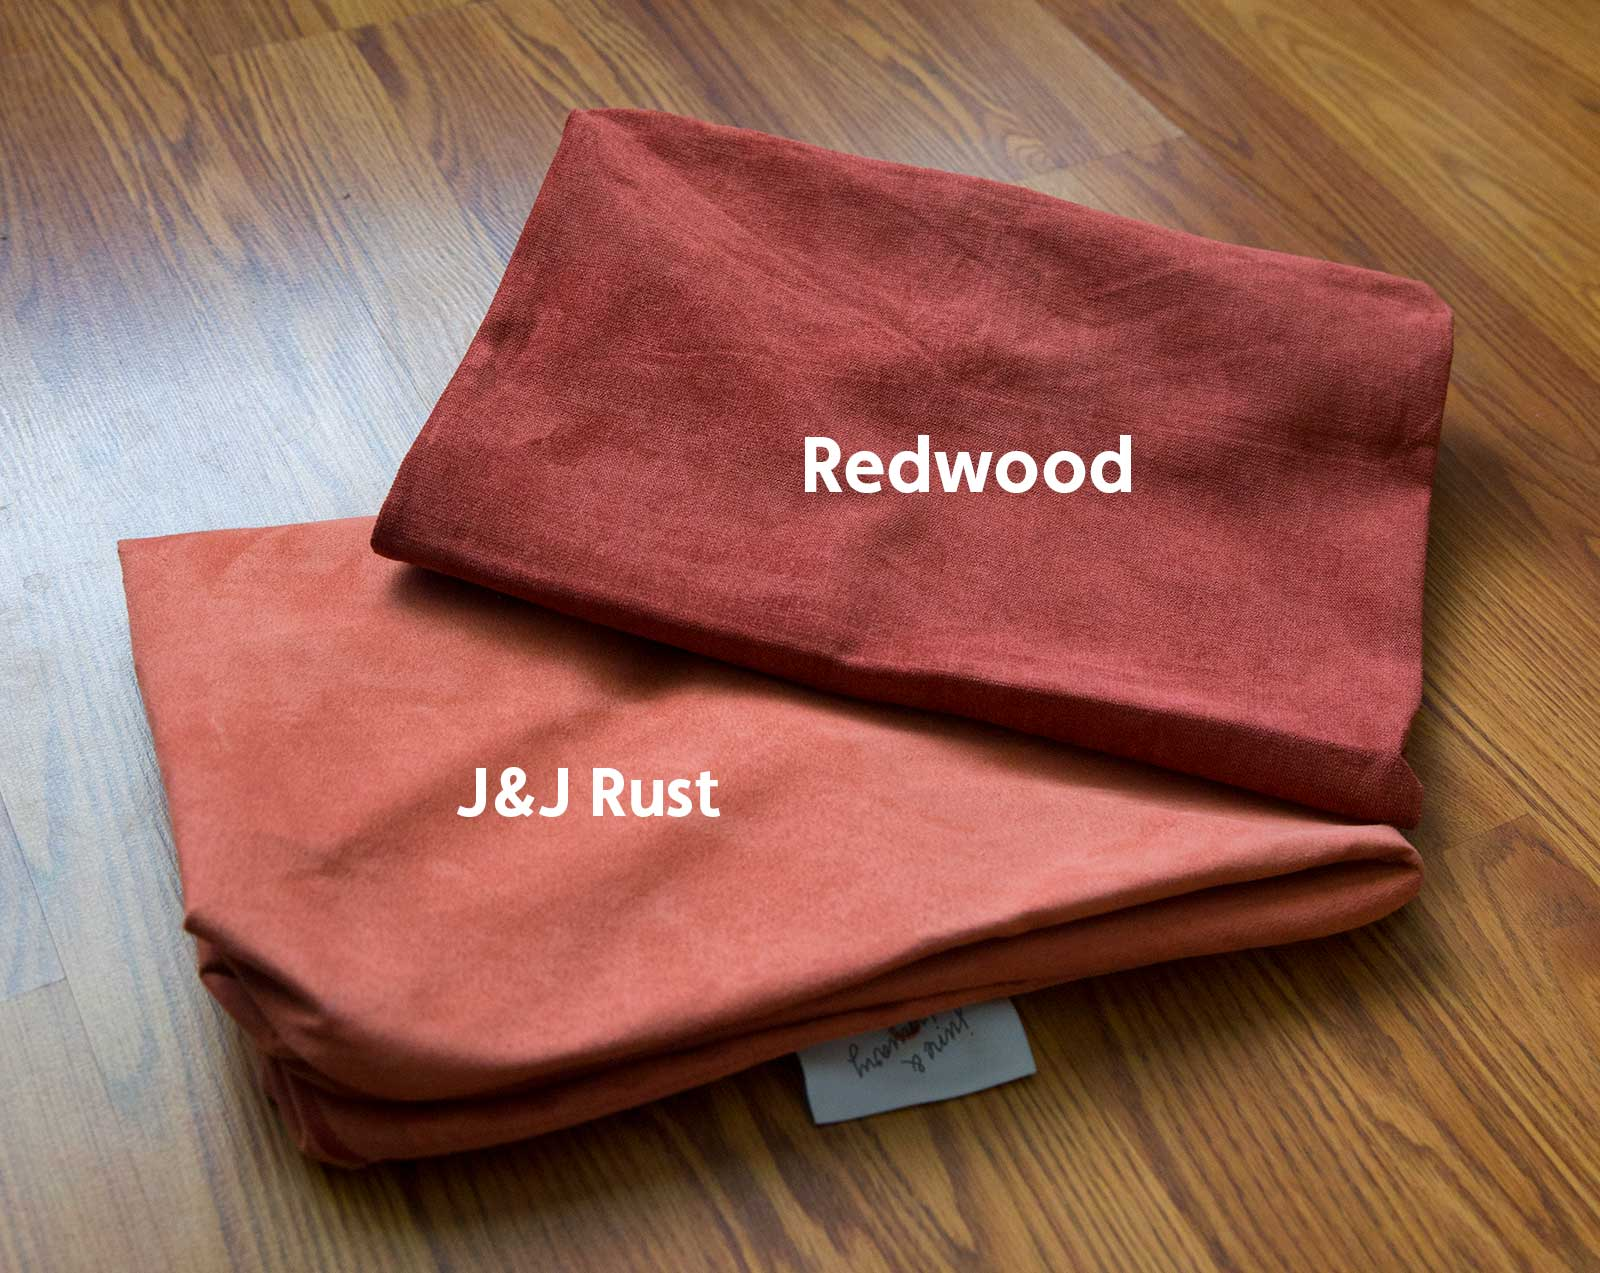 Redwood Cover Set on top of a J&J Rust Cover Set